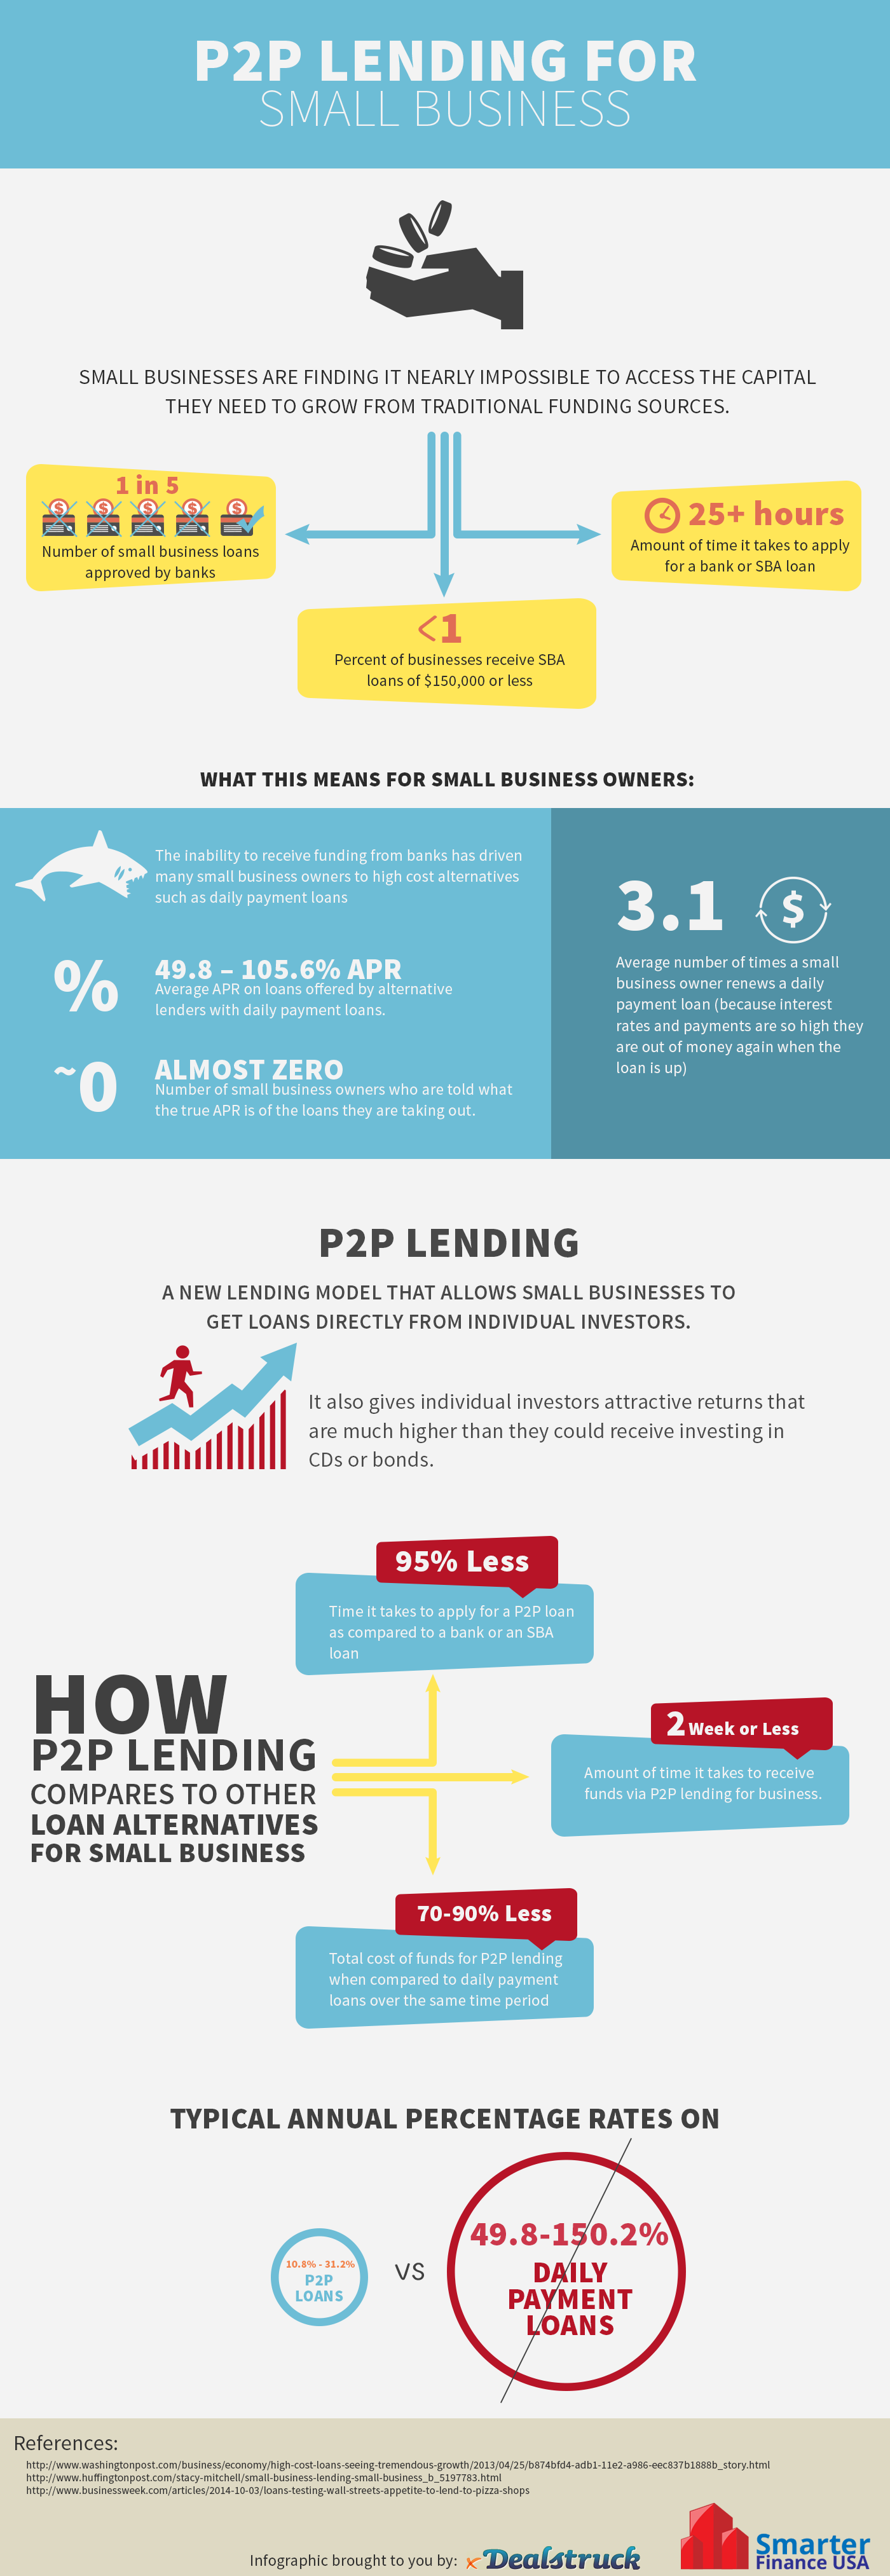 P2P-Loans-For-Small-Business-Infographic